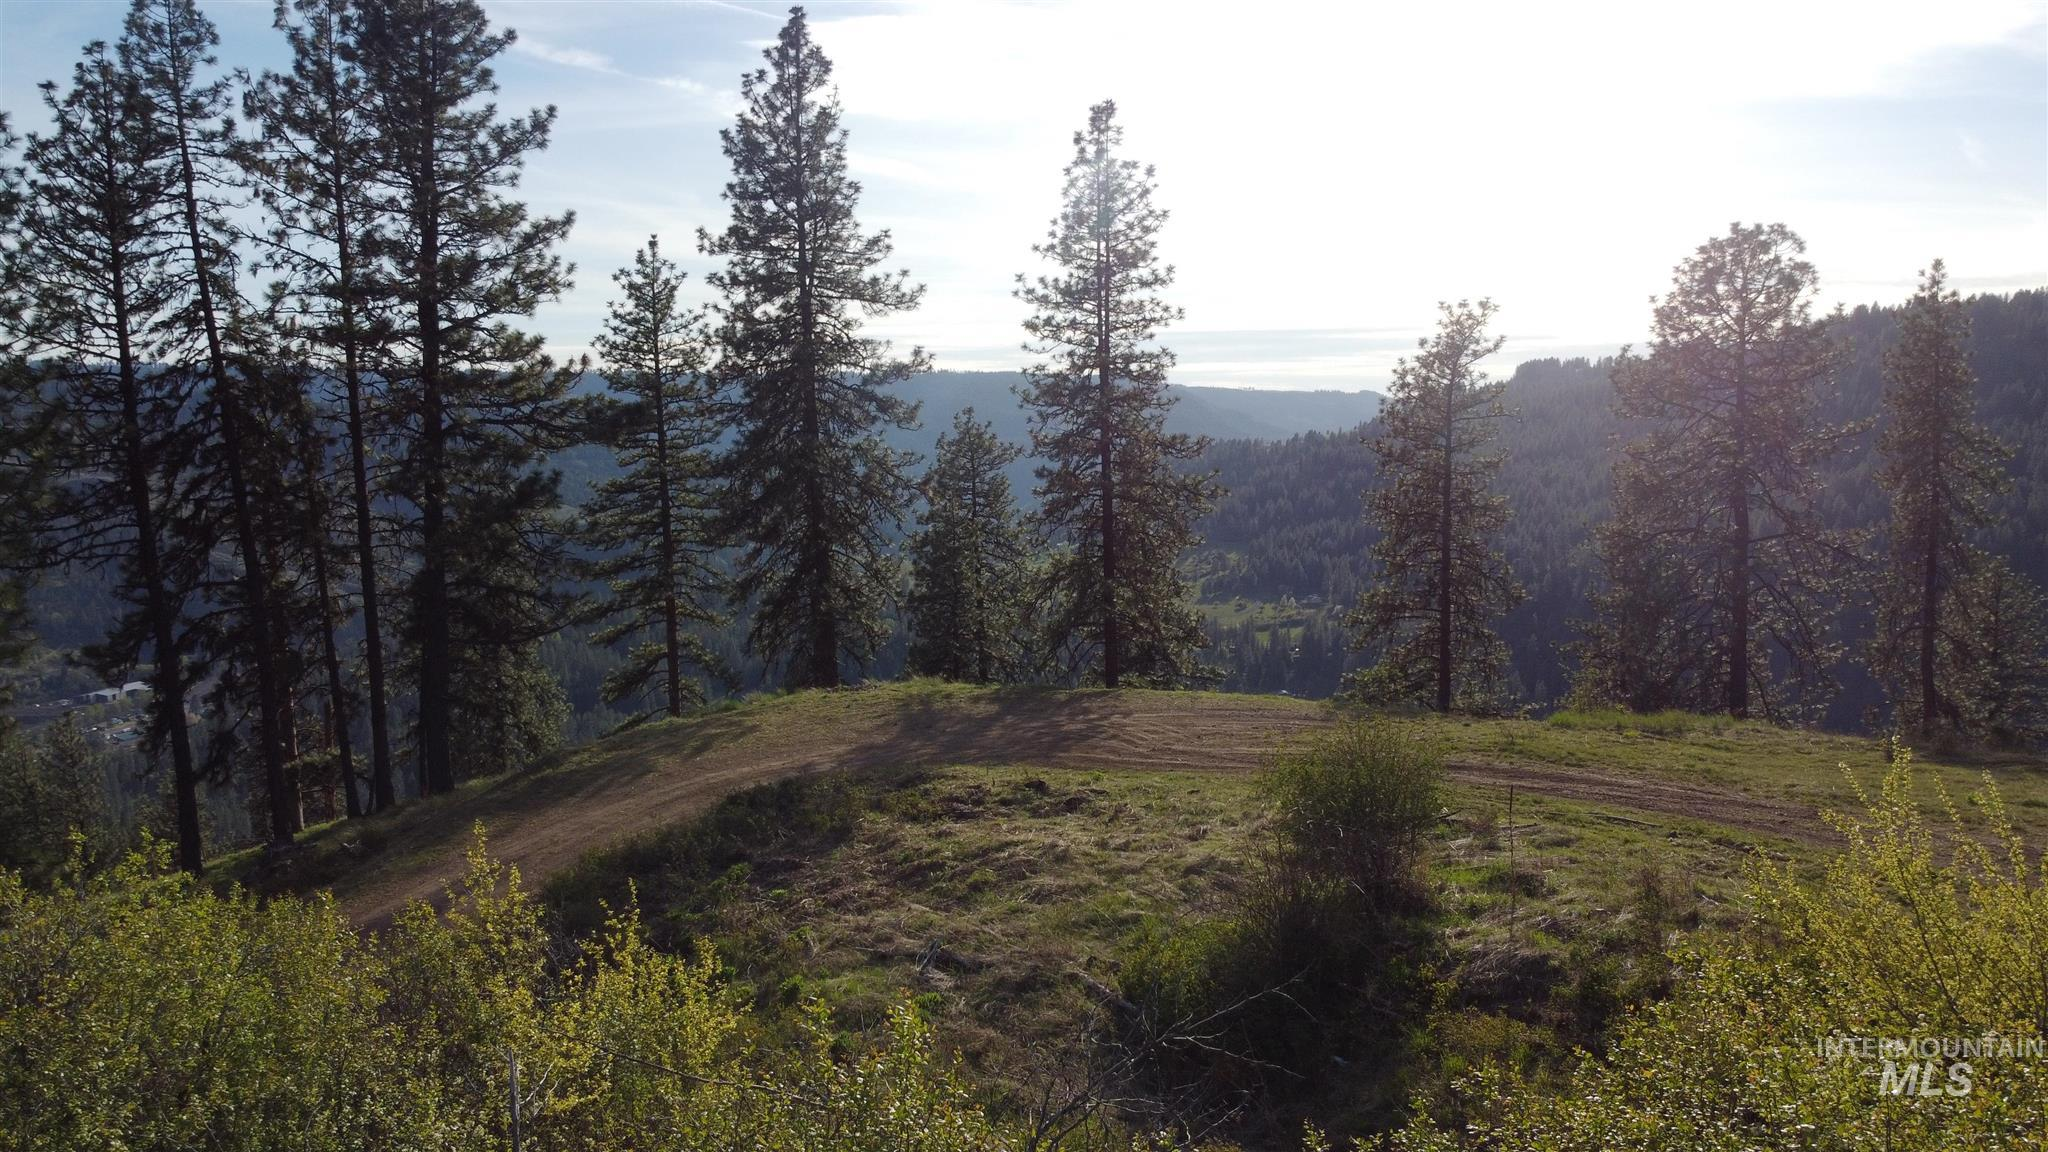 TBD Deer Creek Road Parcel 1 Property Photo - Orofino, ID real estate listing